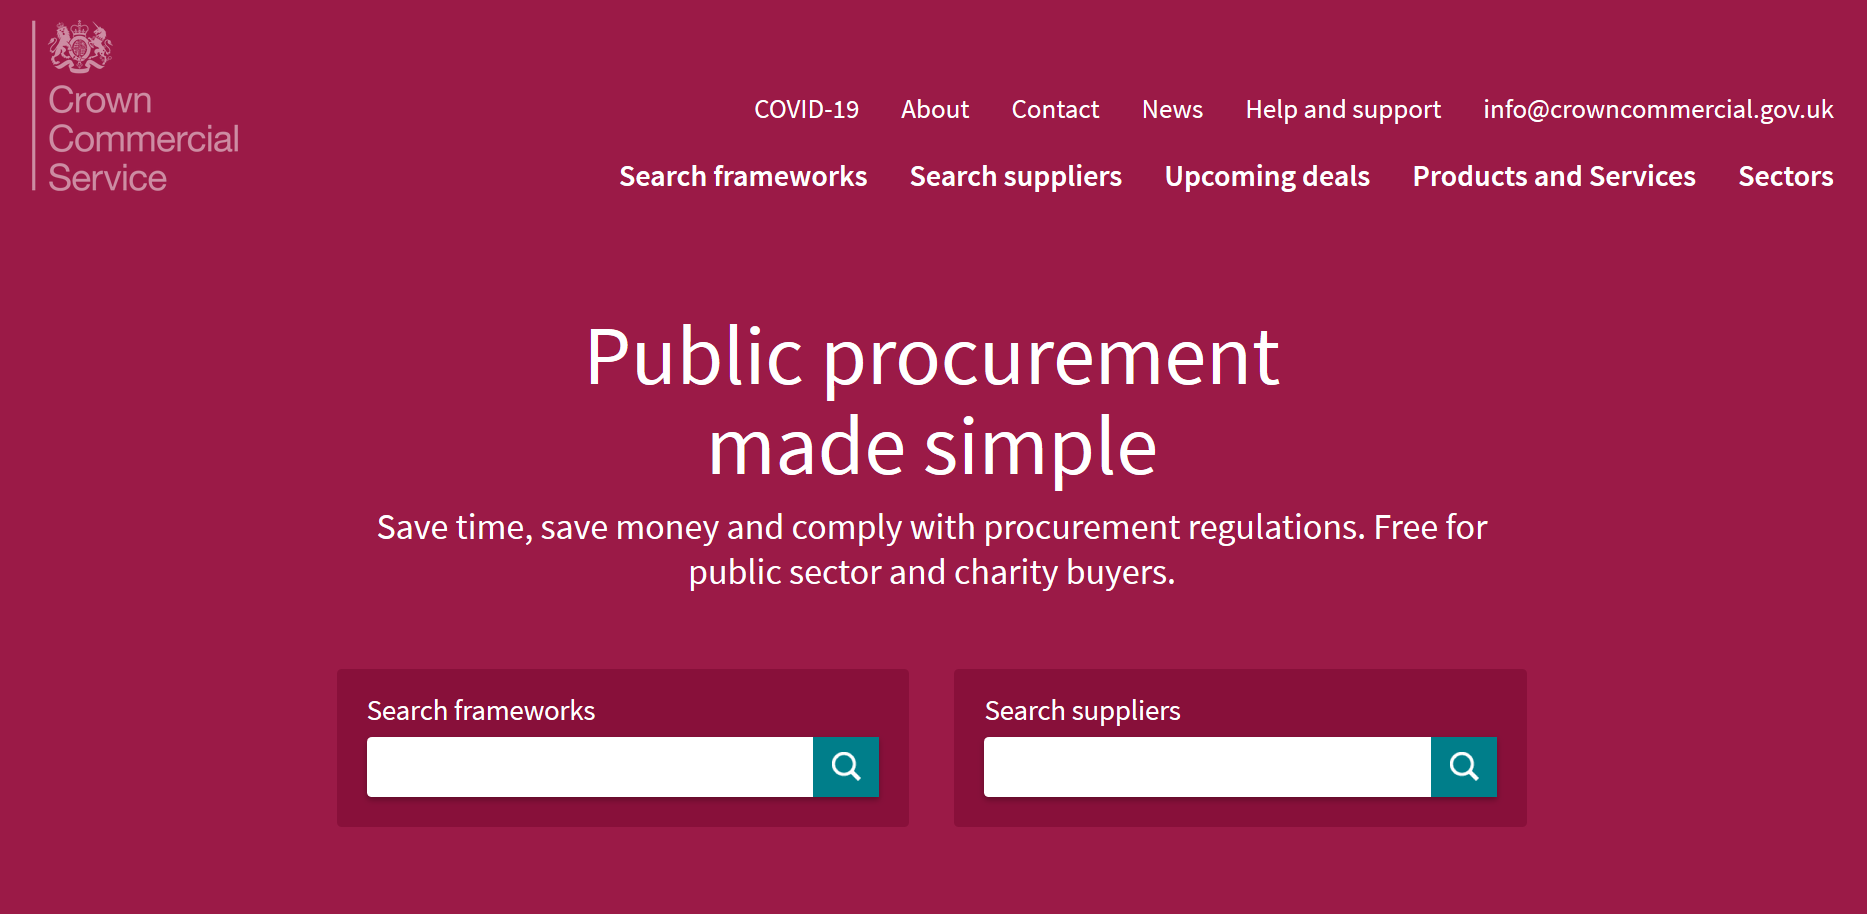 Transpoco listed on the Crown Commercial Service website (CCS)